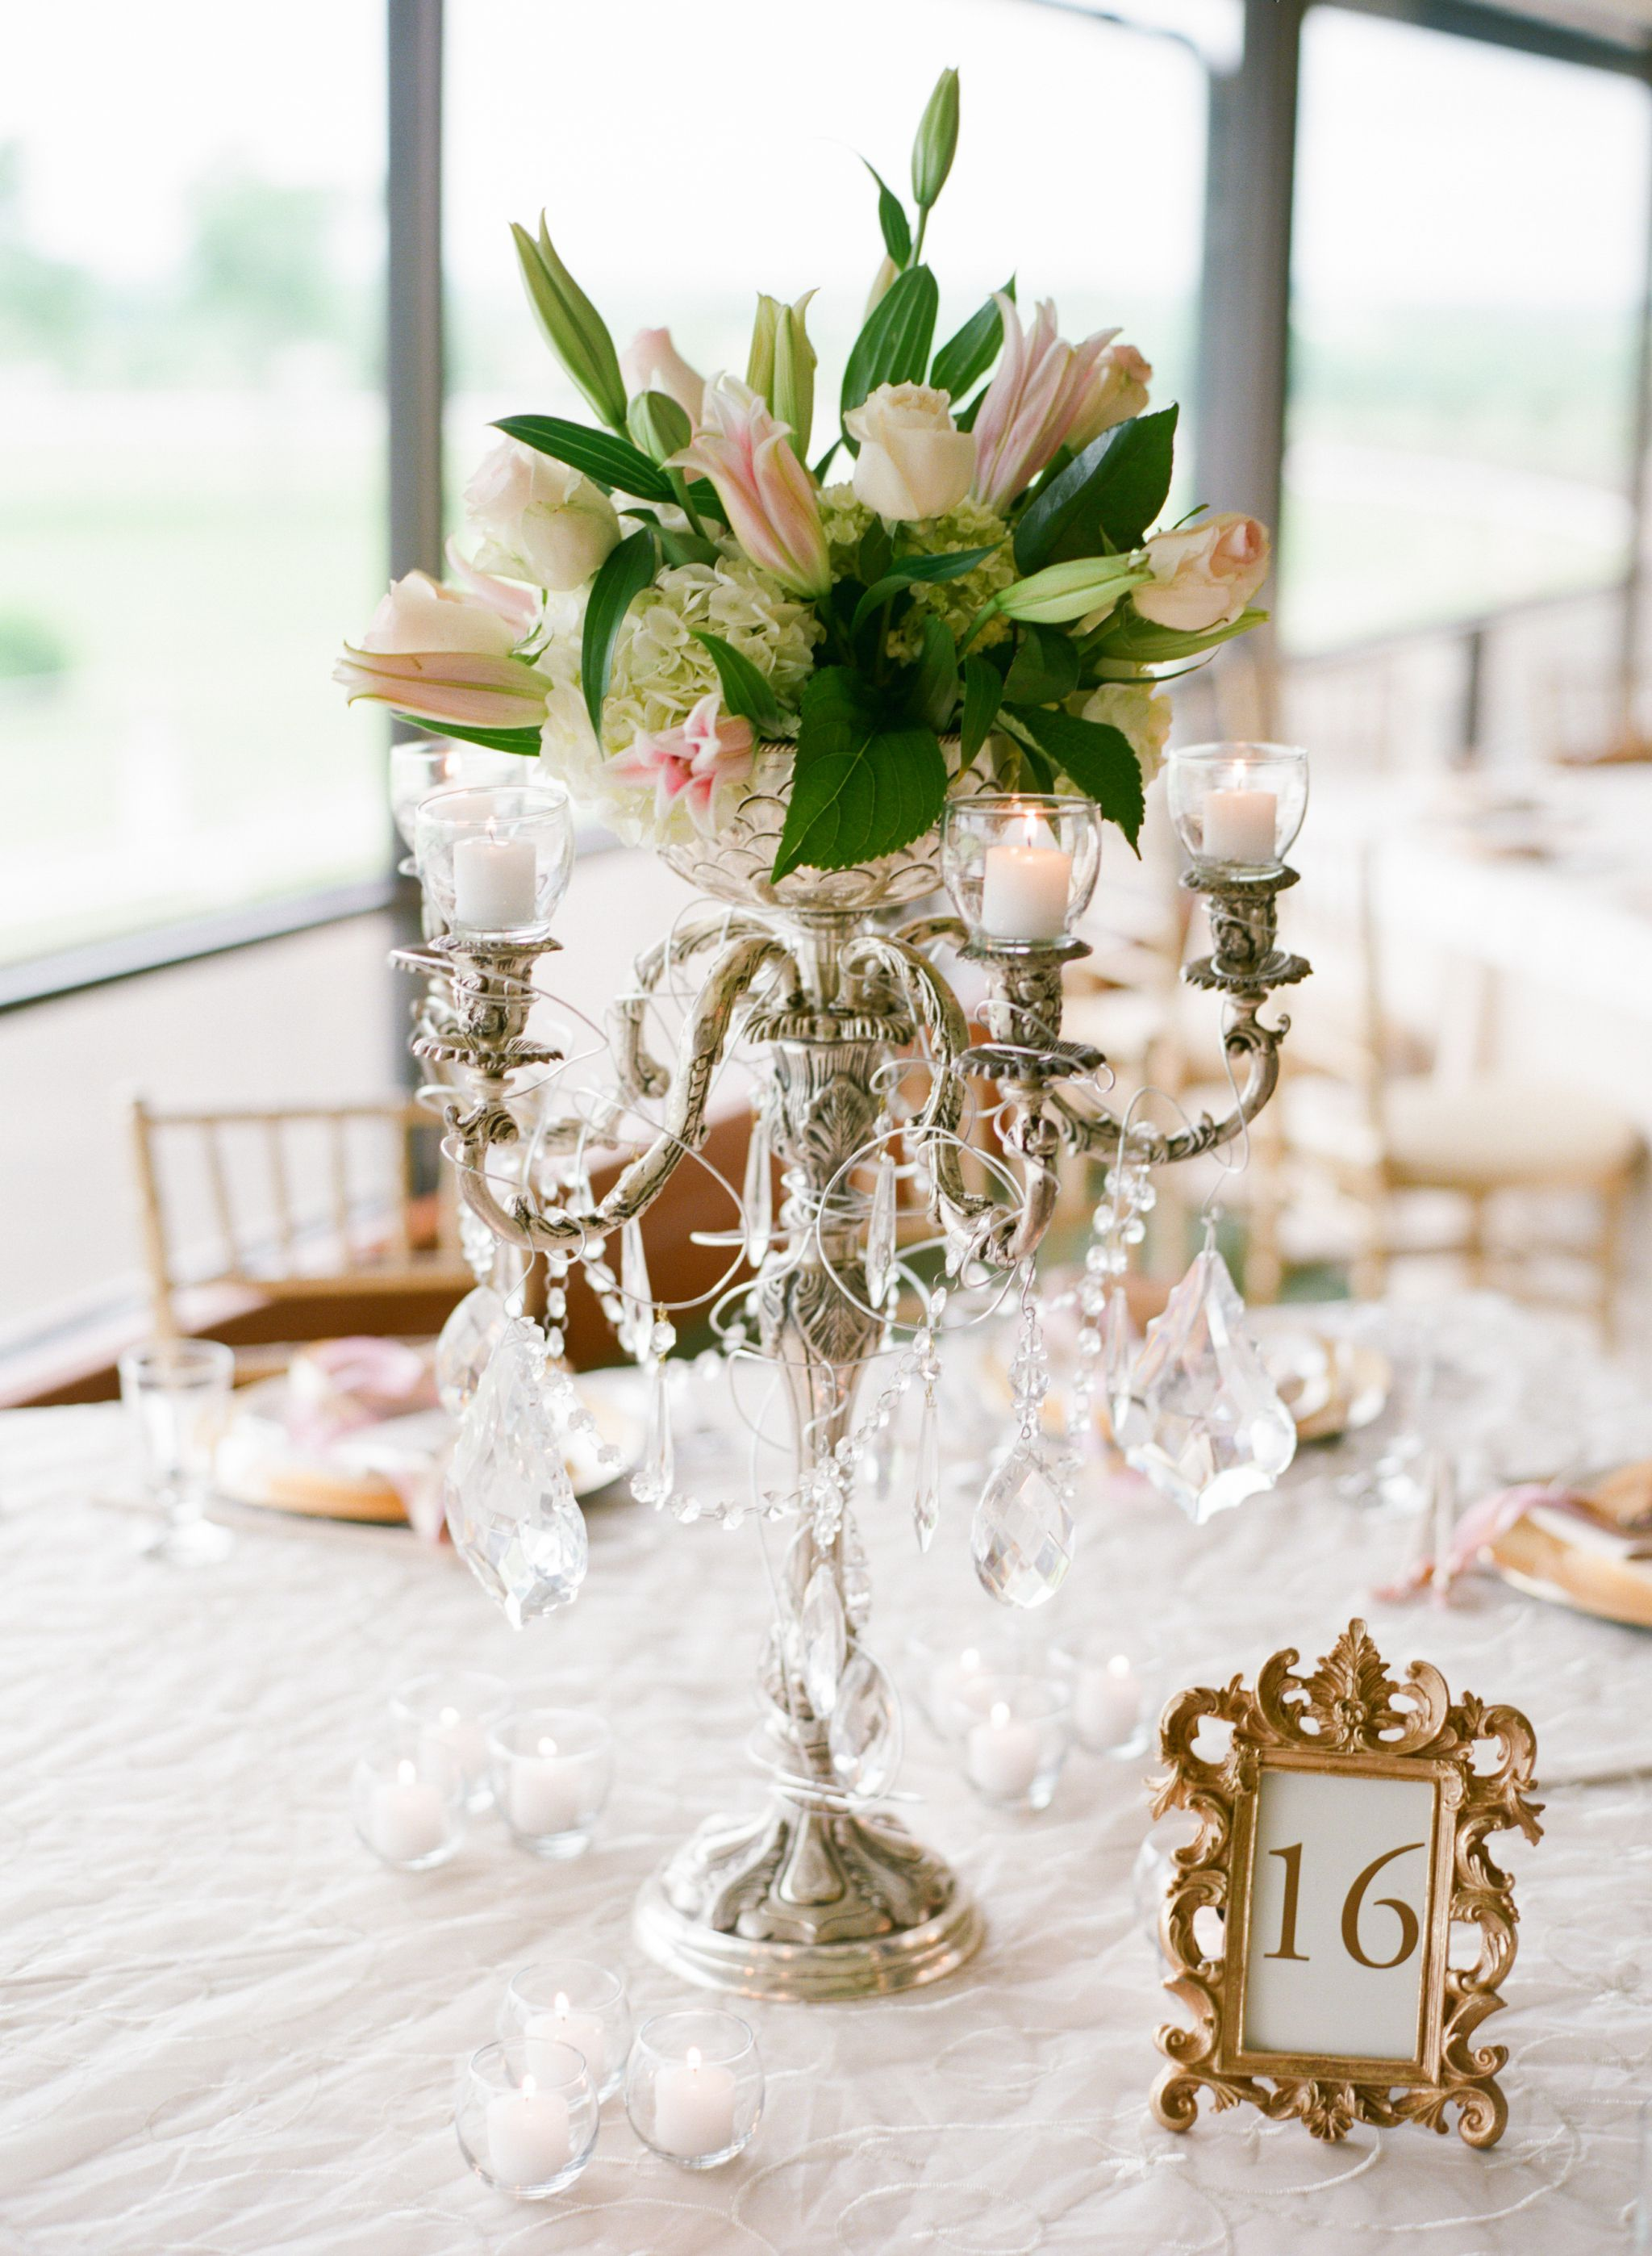 Tall Blush Pink And White Hydrangea Lily Rose Wedding Reception Flowers With Candles